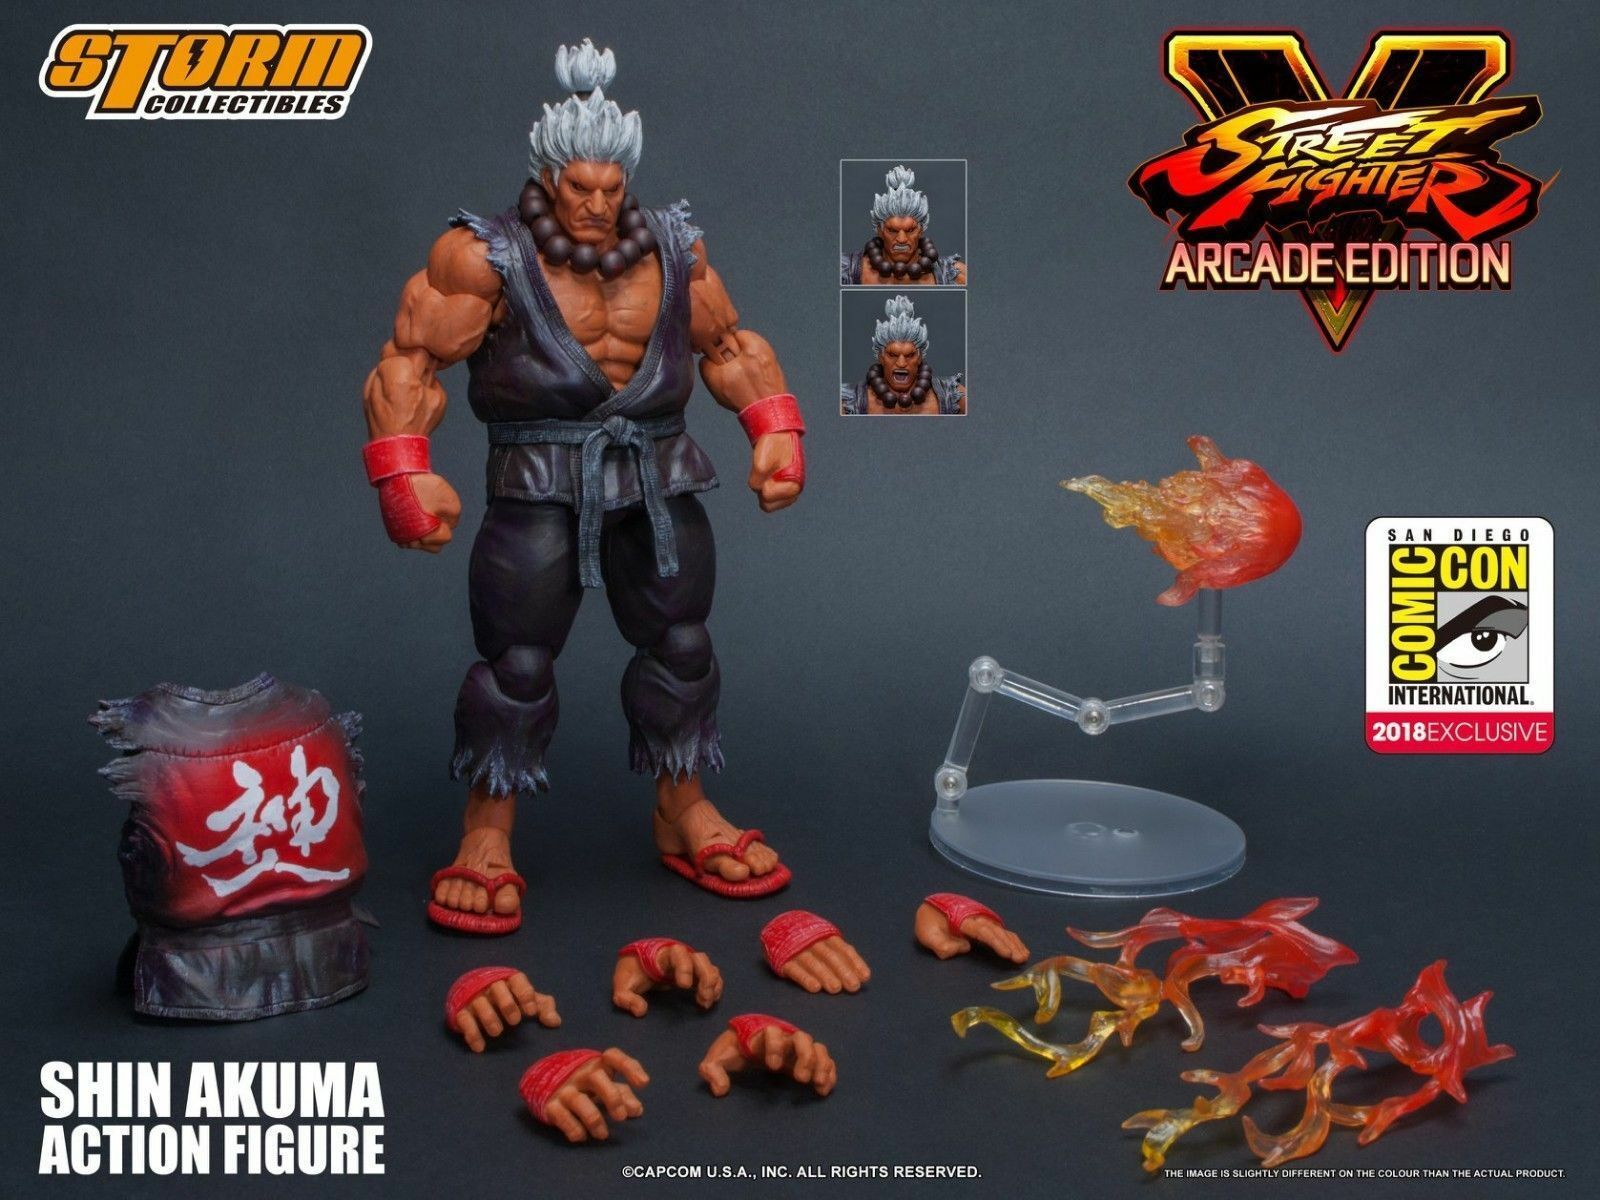 Street Fighter V Storm Collectibles SDCC Exclusive Shin Akuma 1 12 Action Figure